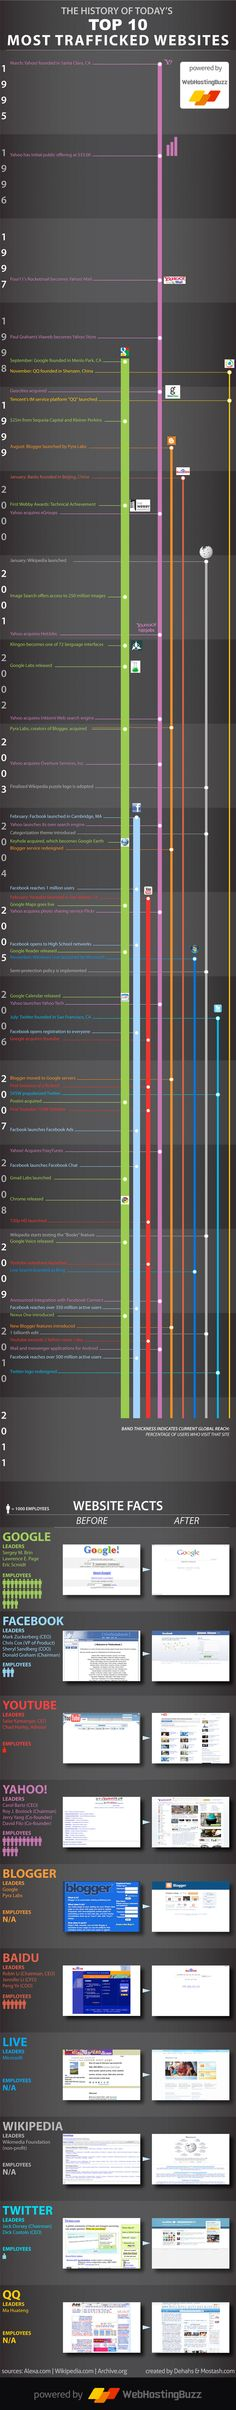 Top 10 most trafficked websites #infographic #internet